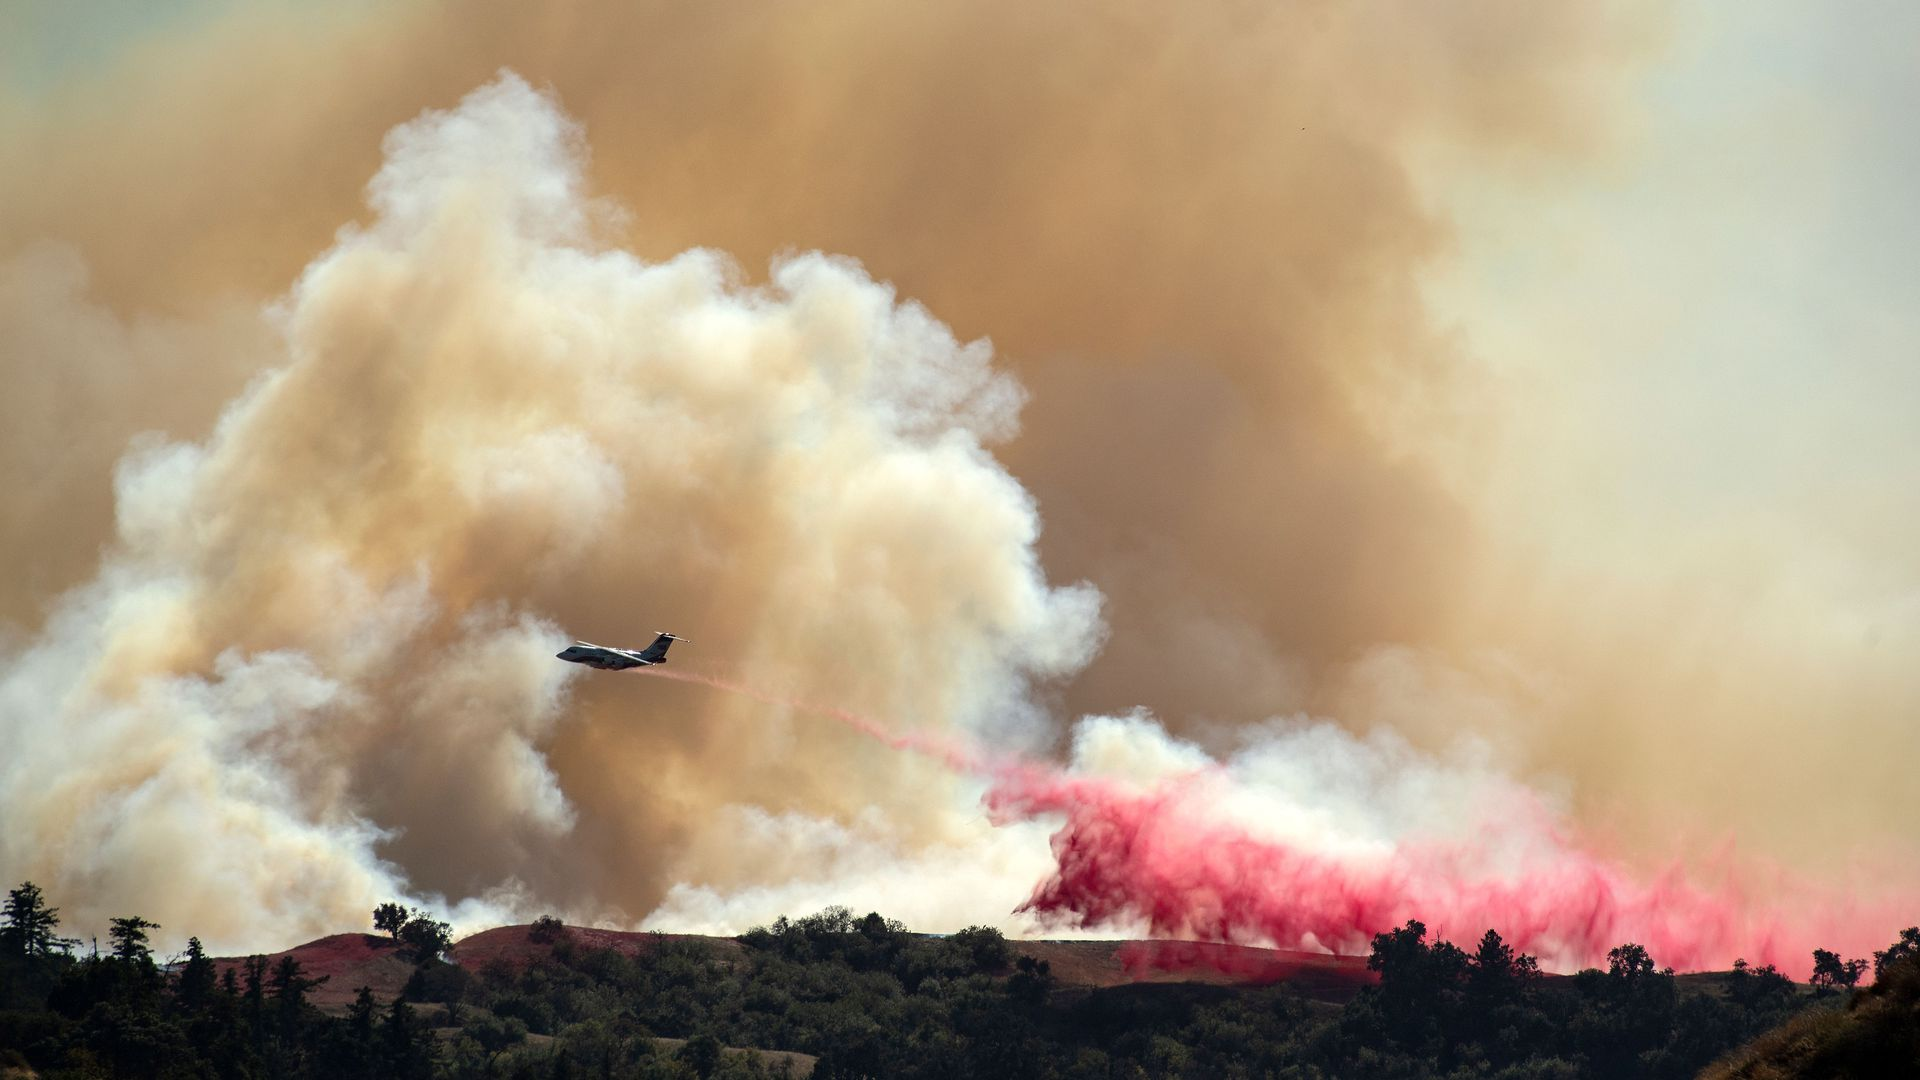 southern california wildfires: thousands evacuated - axios